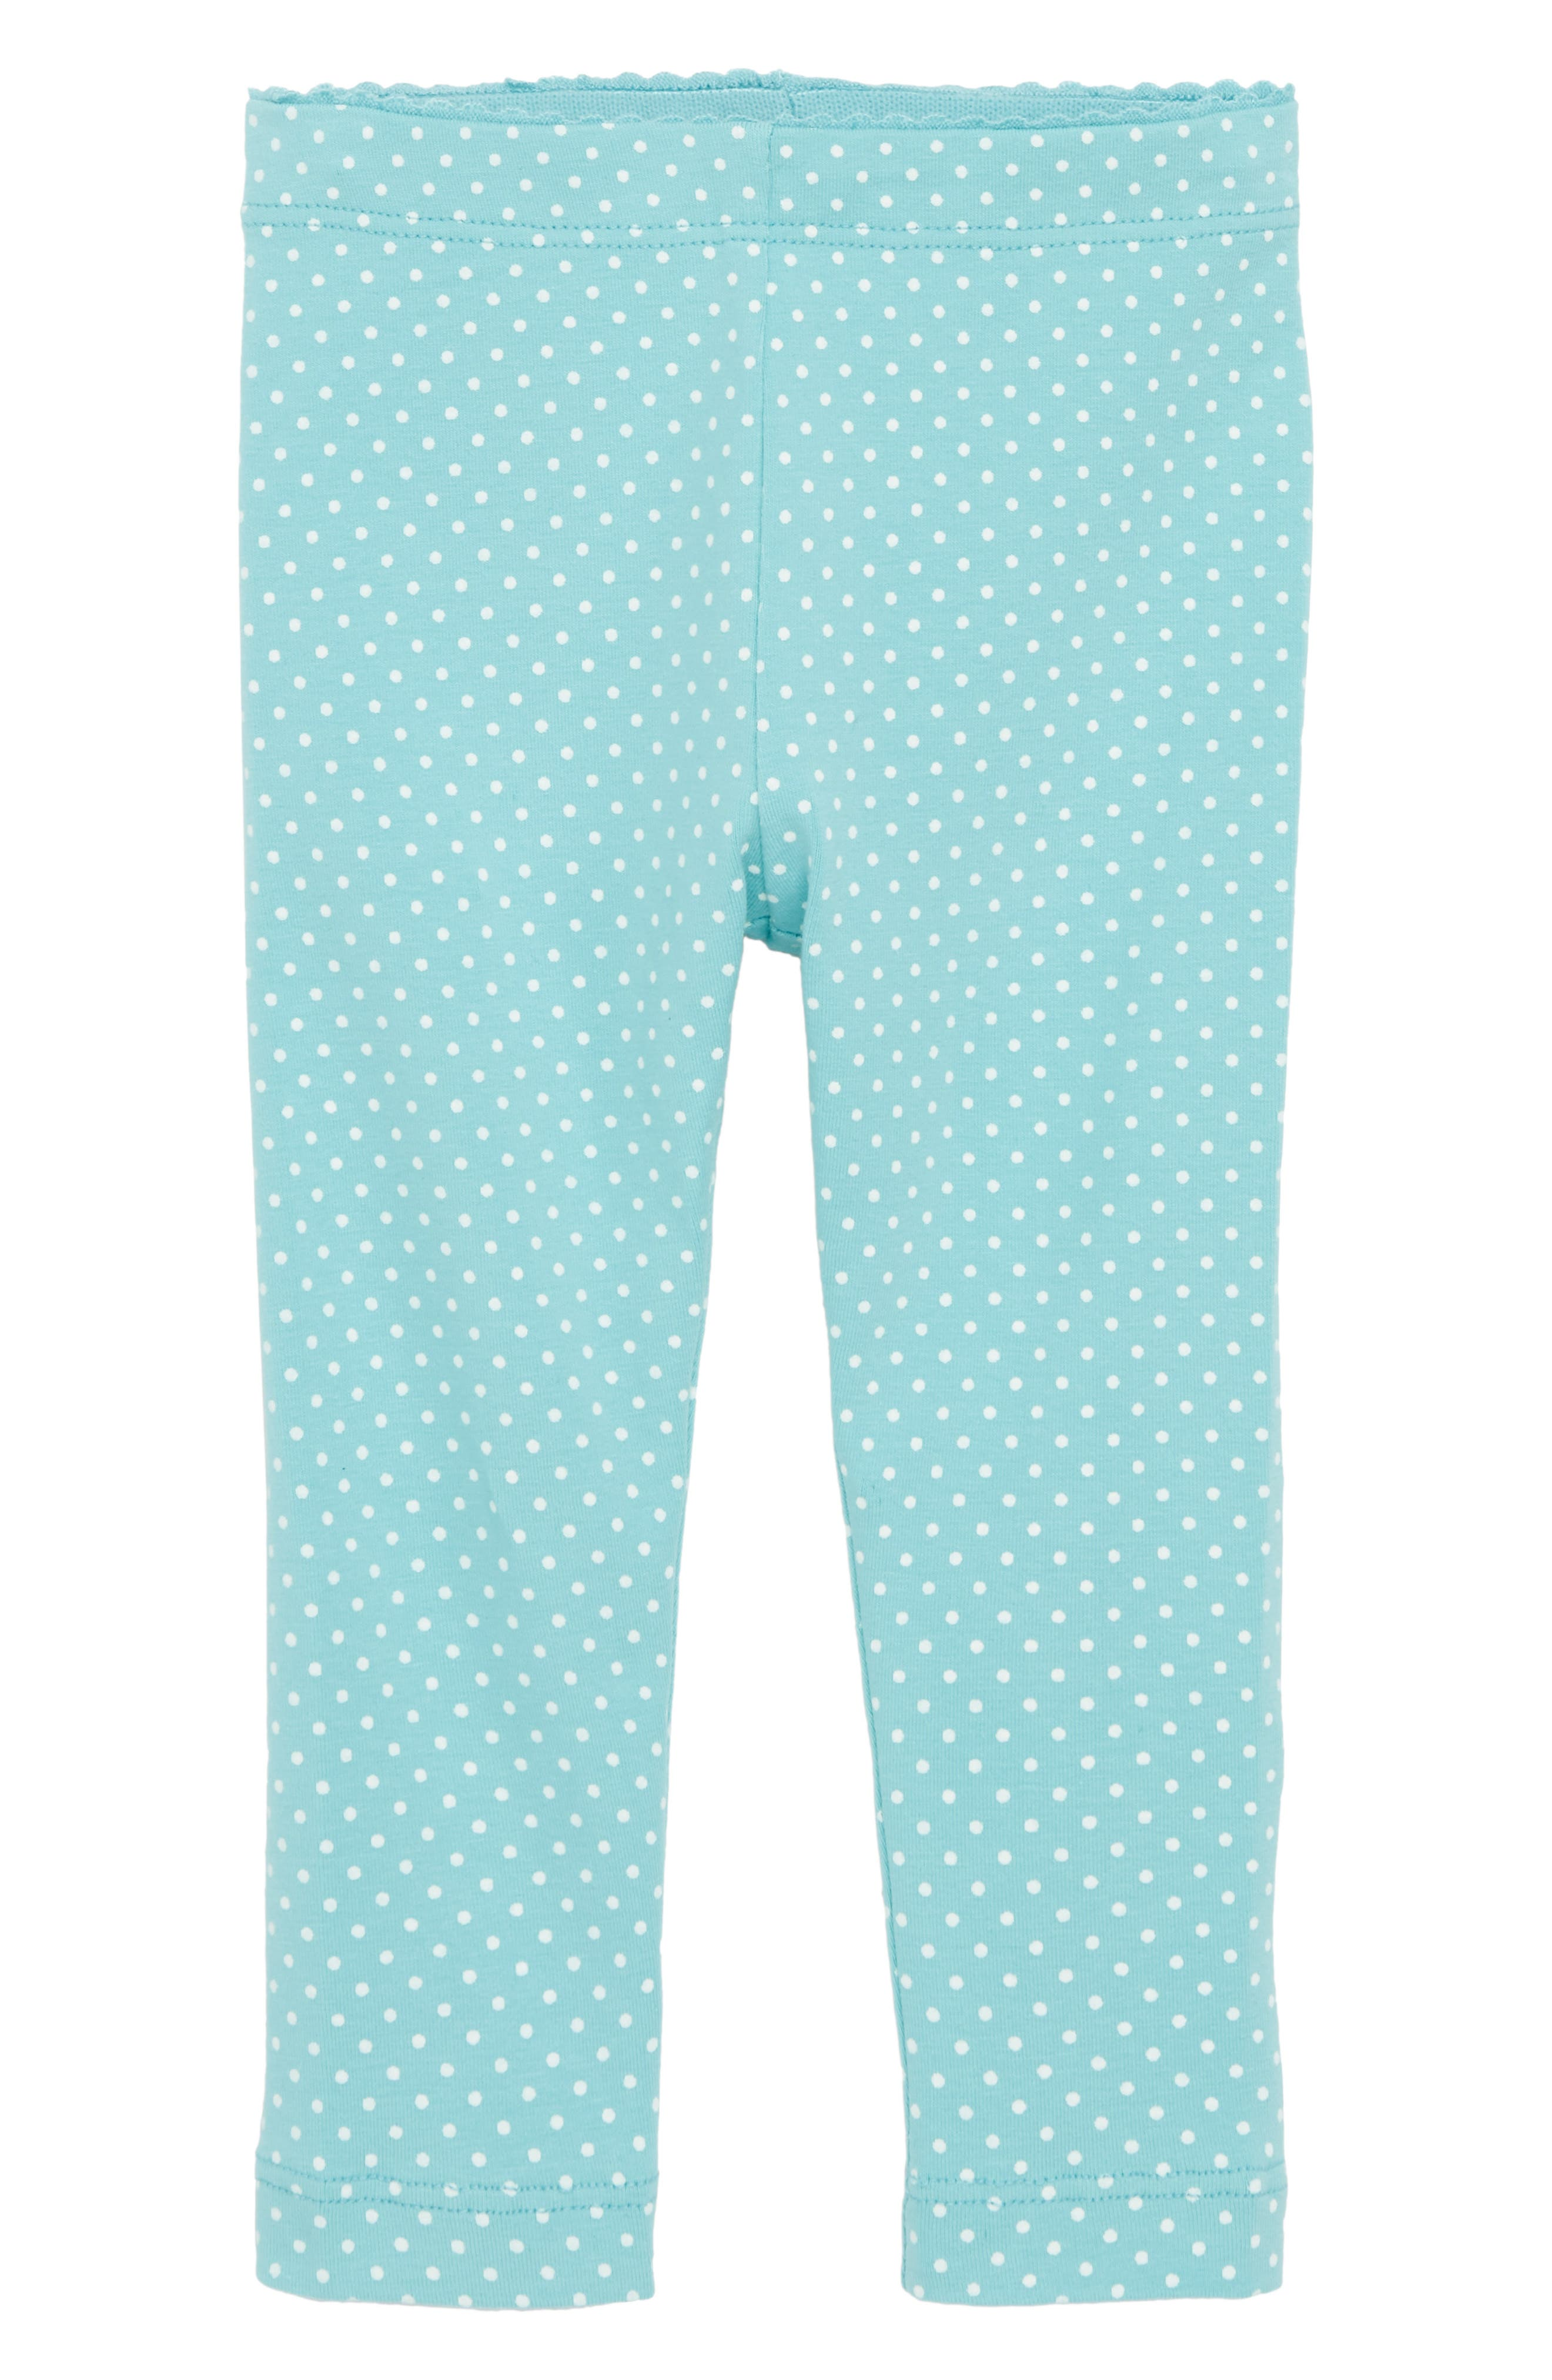 Pin Dot Leggings,                         Main,                         color, Ciel